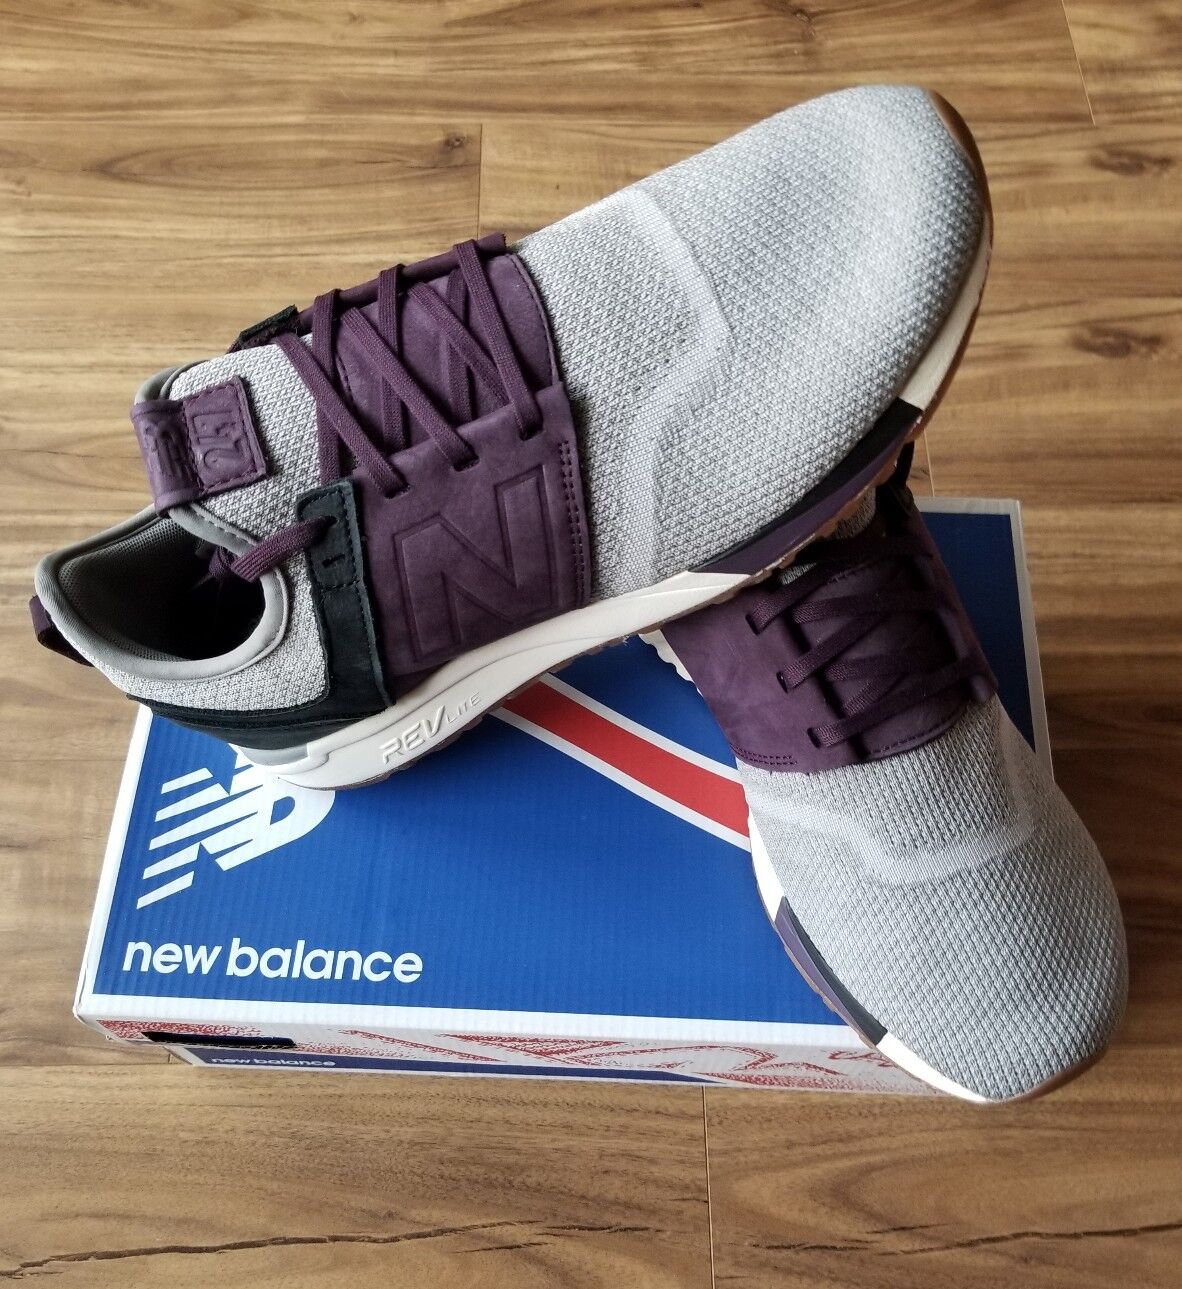 New Balance 247 Luxe Size in Grey/Black/Burgundy/Purple MRL247LM Men's Size Luxe 11.5 cc2414